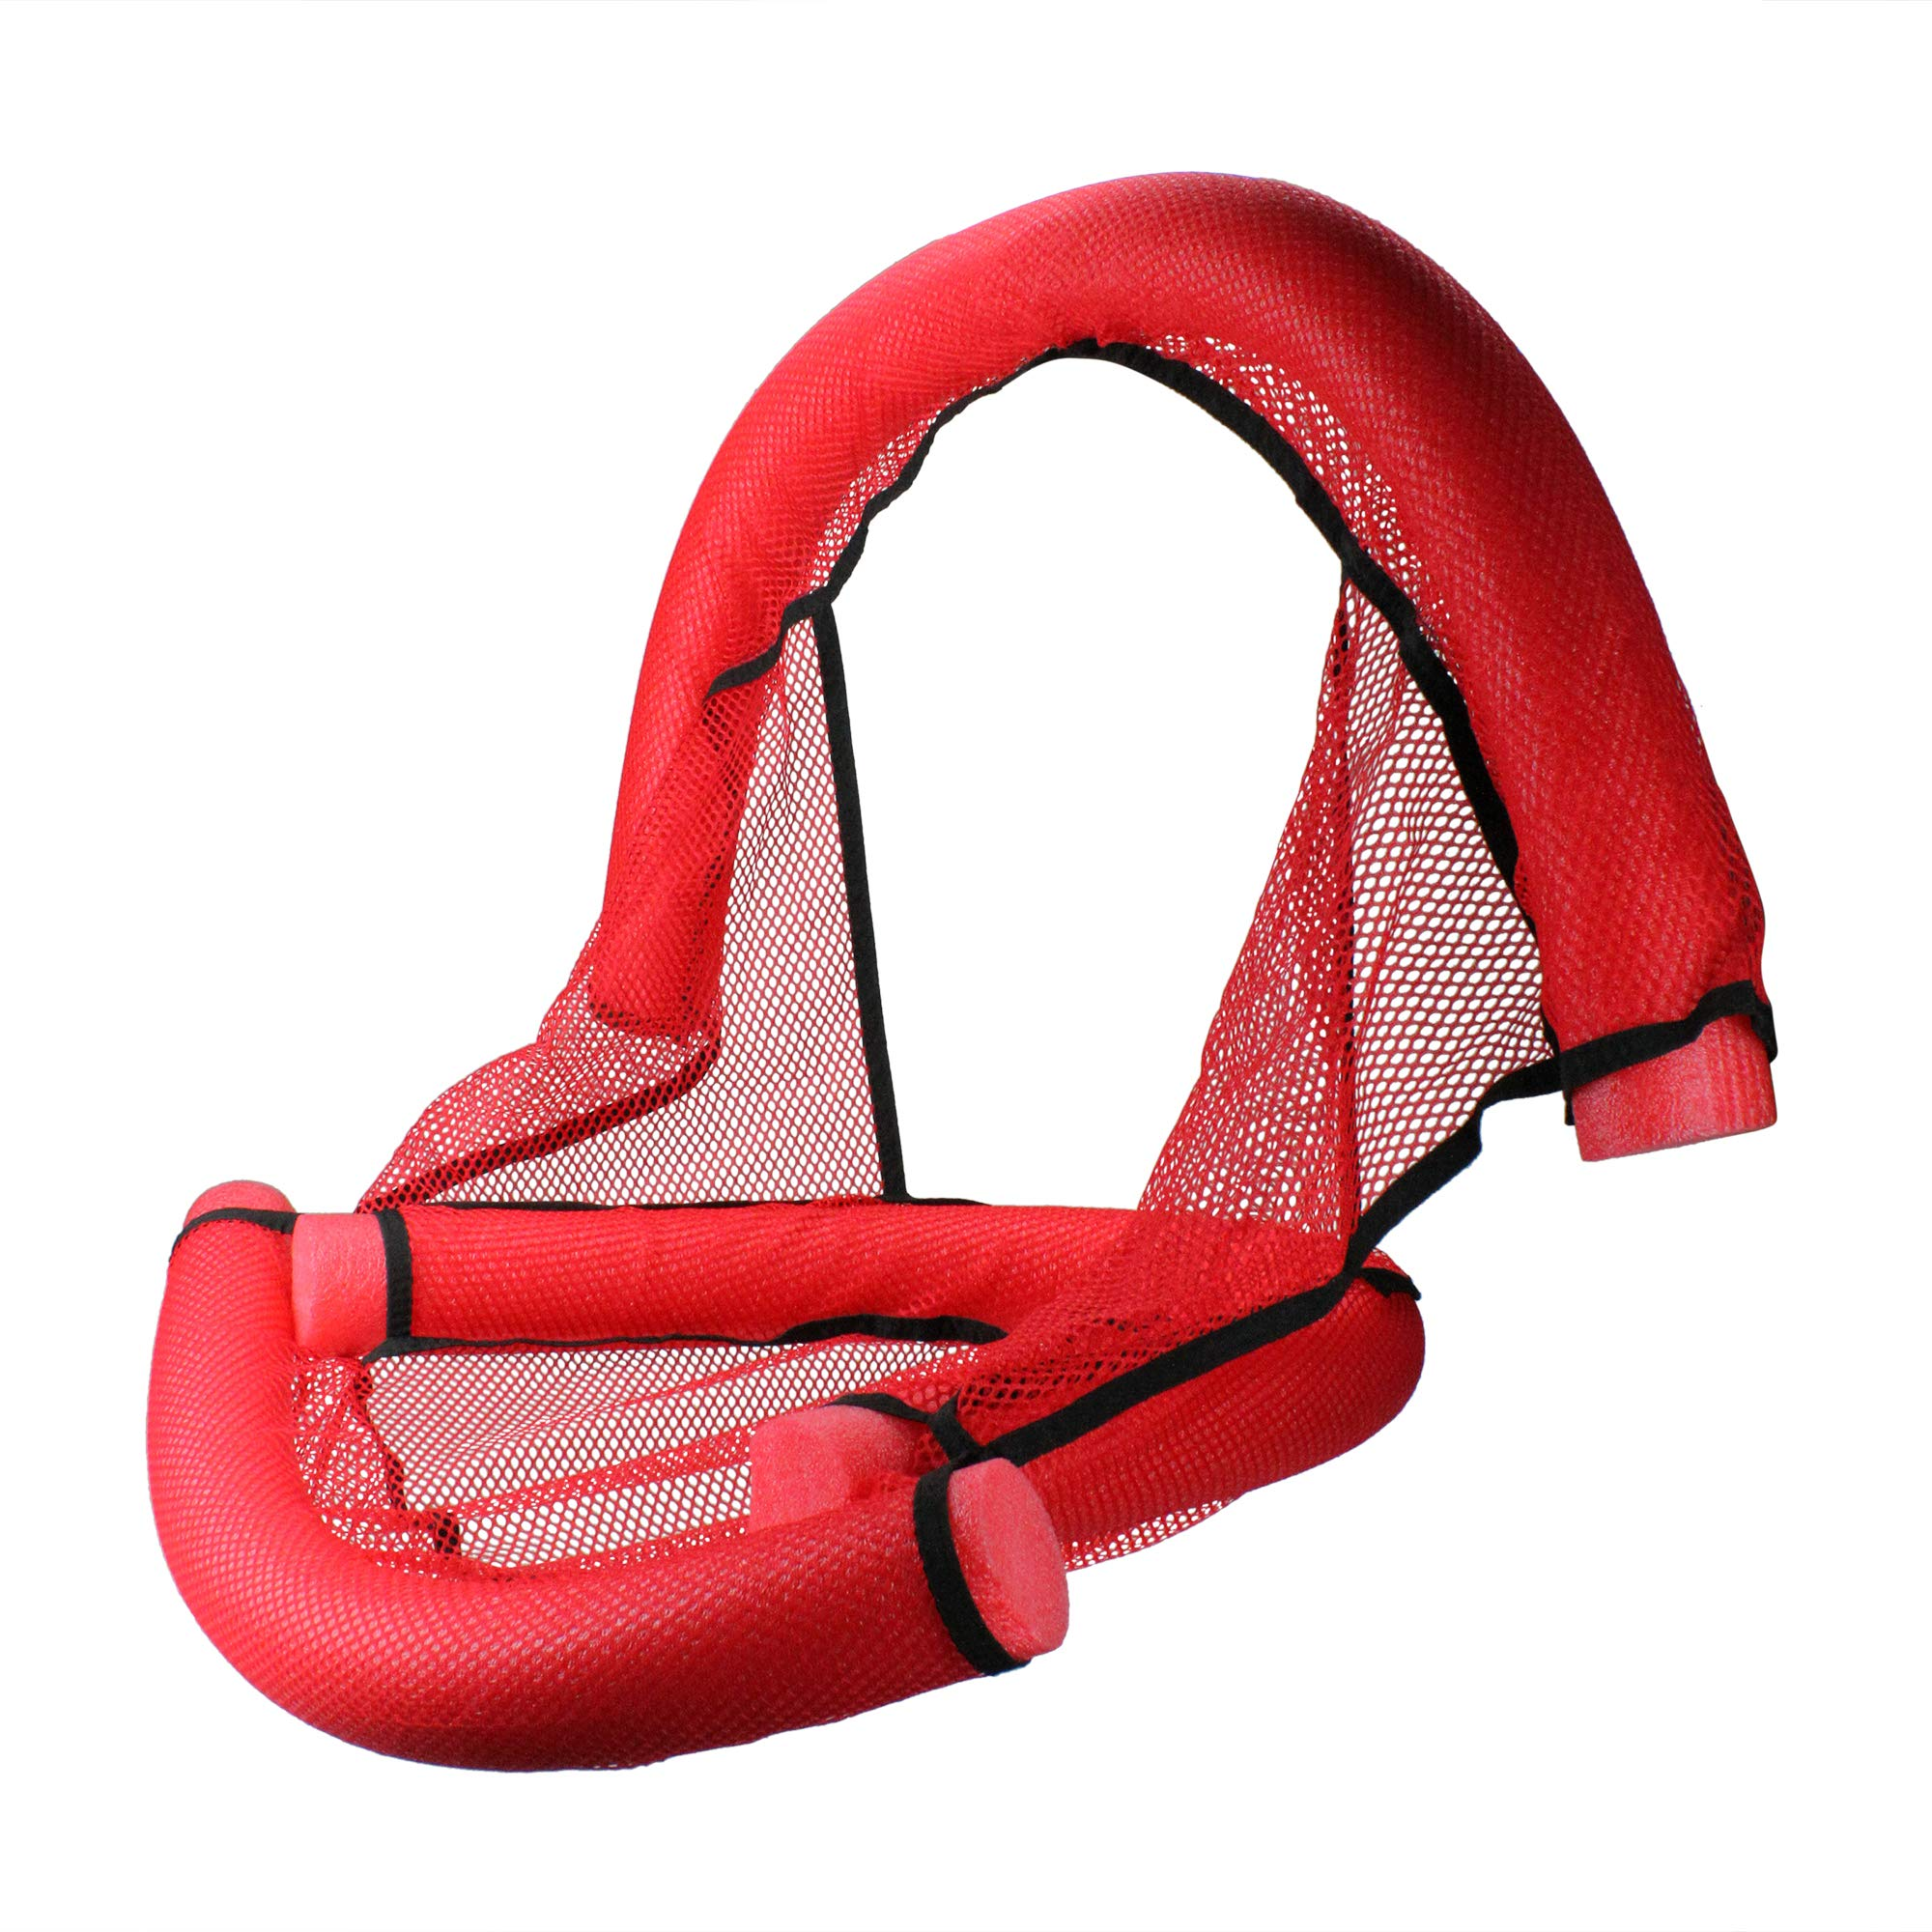 30'' Red Water Sports Foam Noodle Fun Seat for Swimming Pool